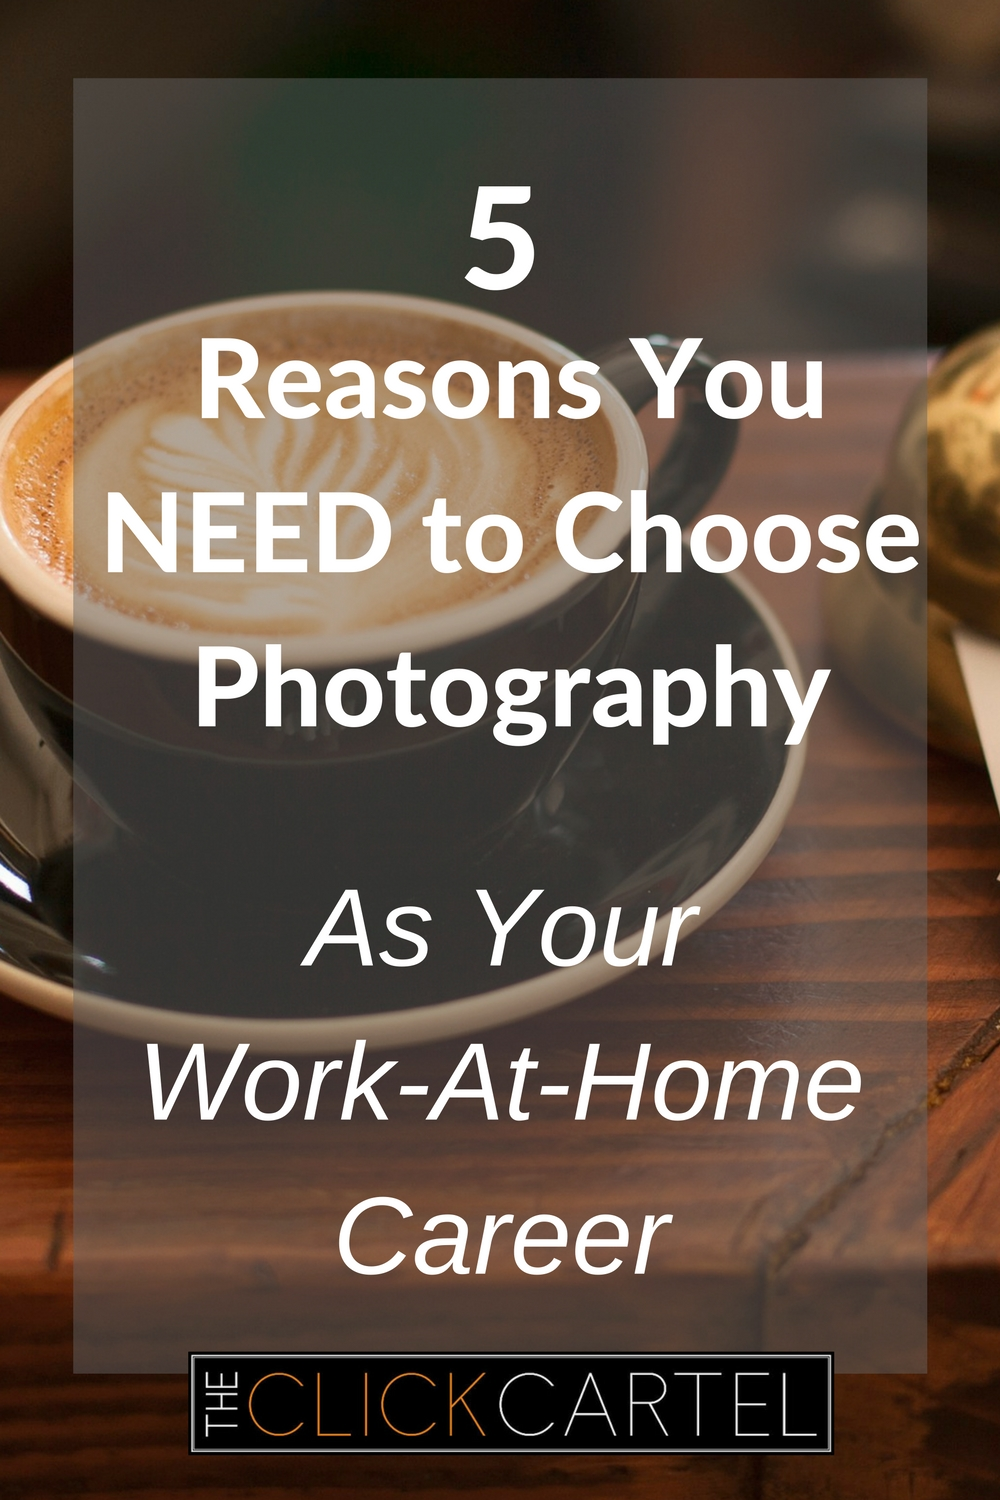 5 reasons you need to choose photography as your work at home 5 reasons you need to choose photography as your work at home career